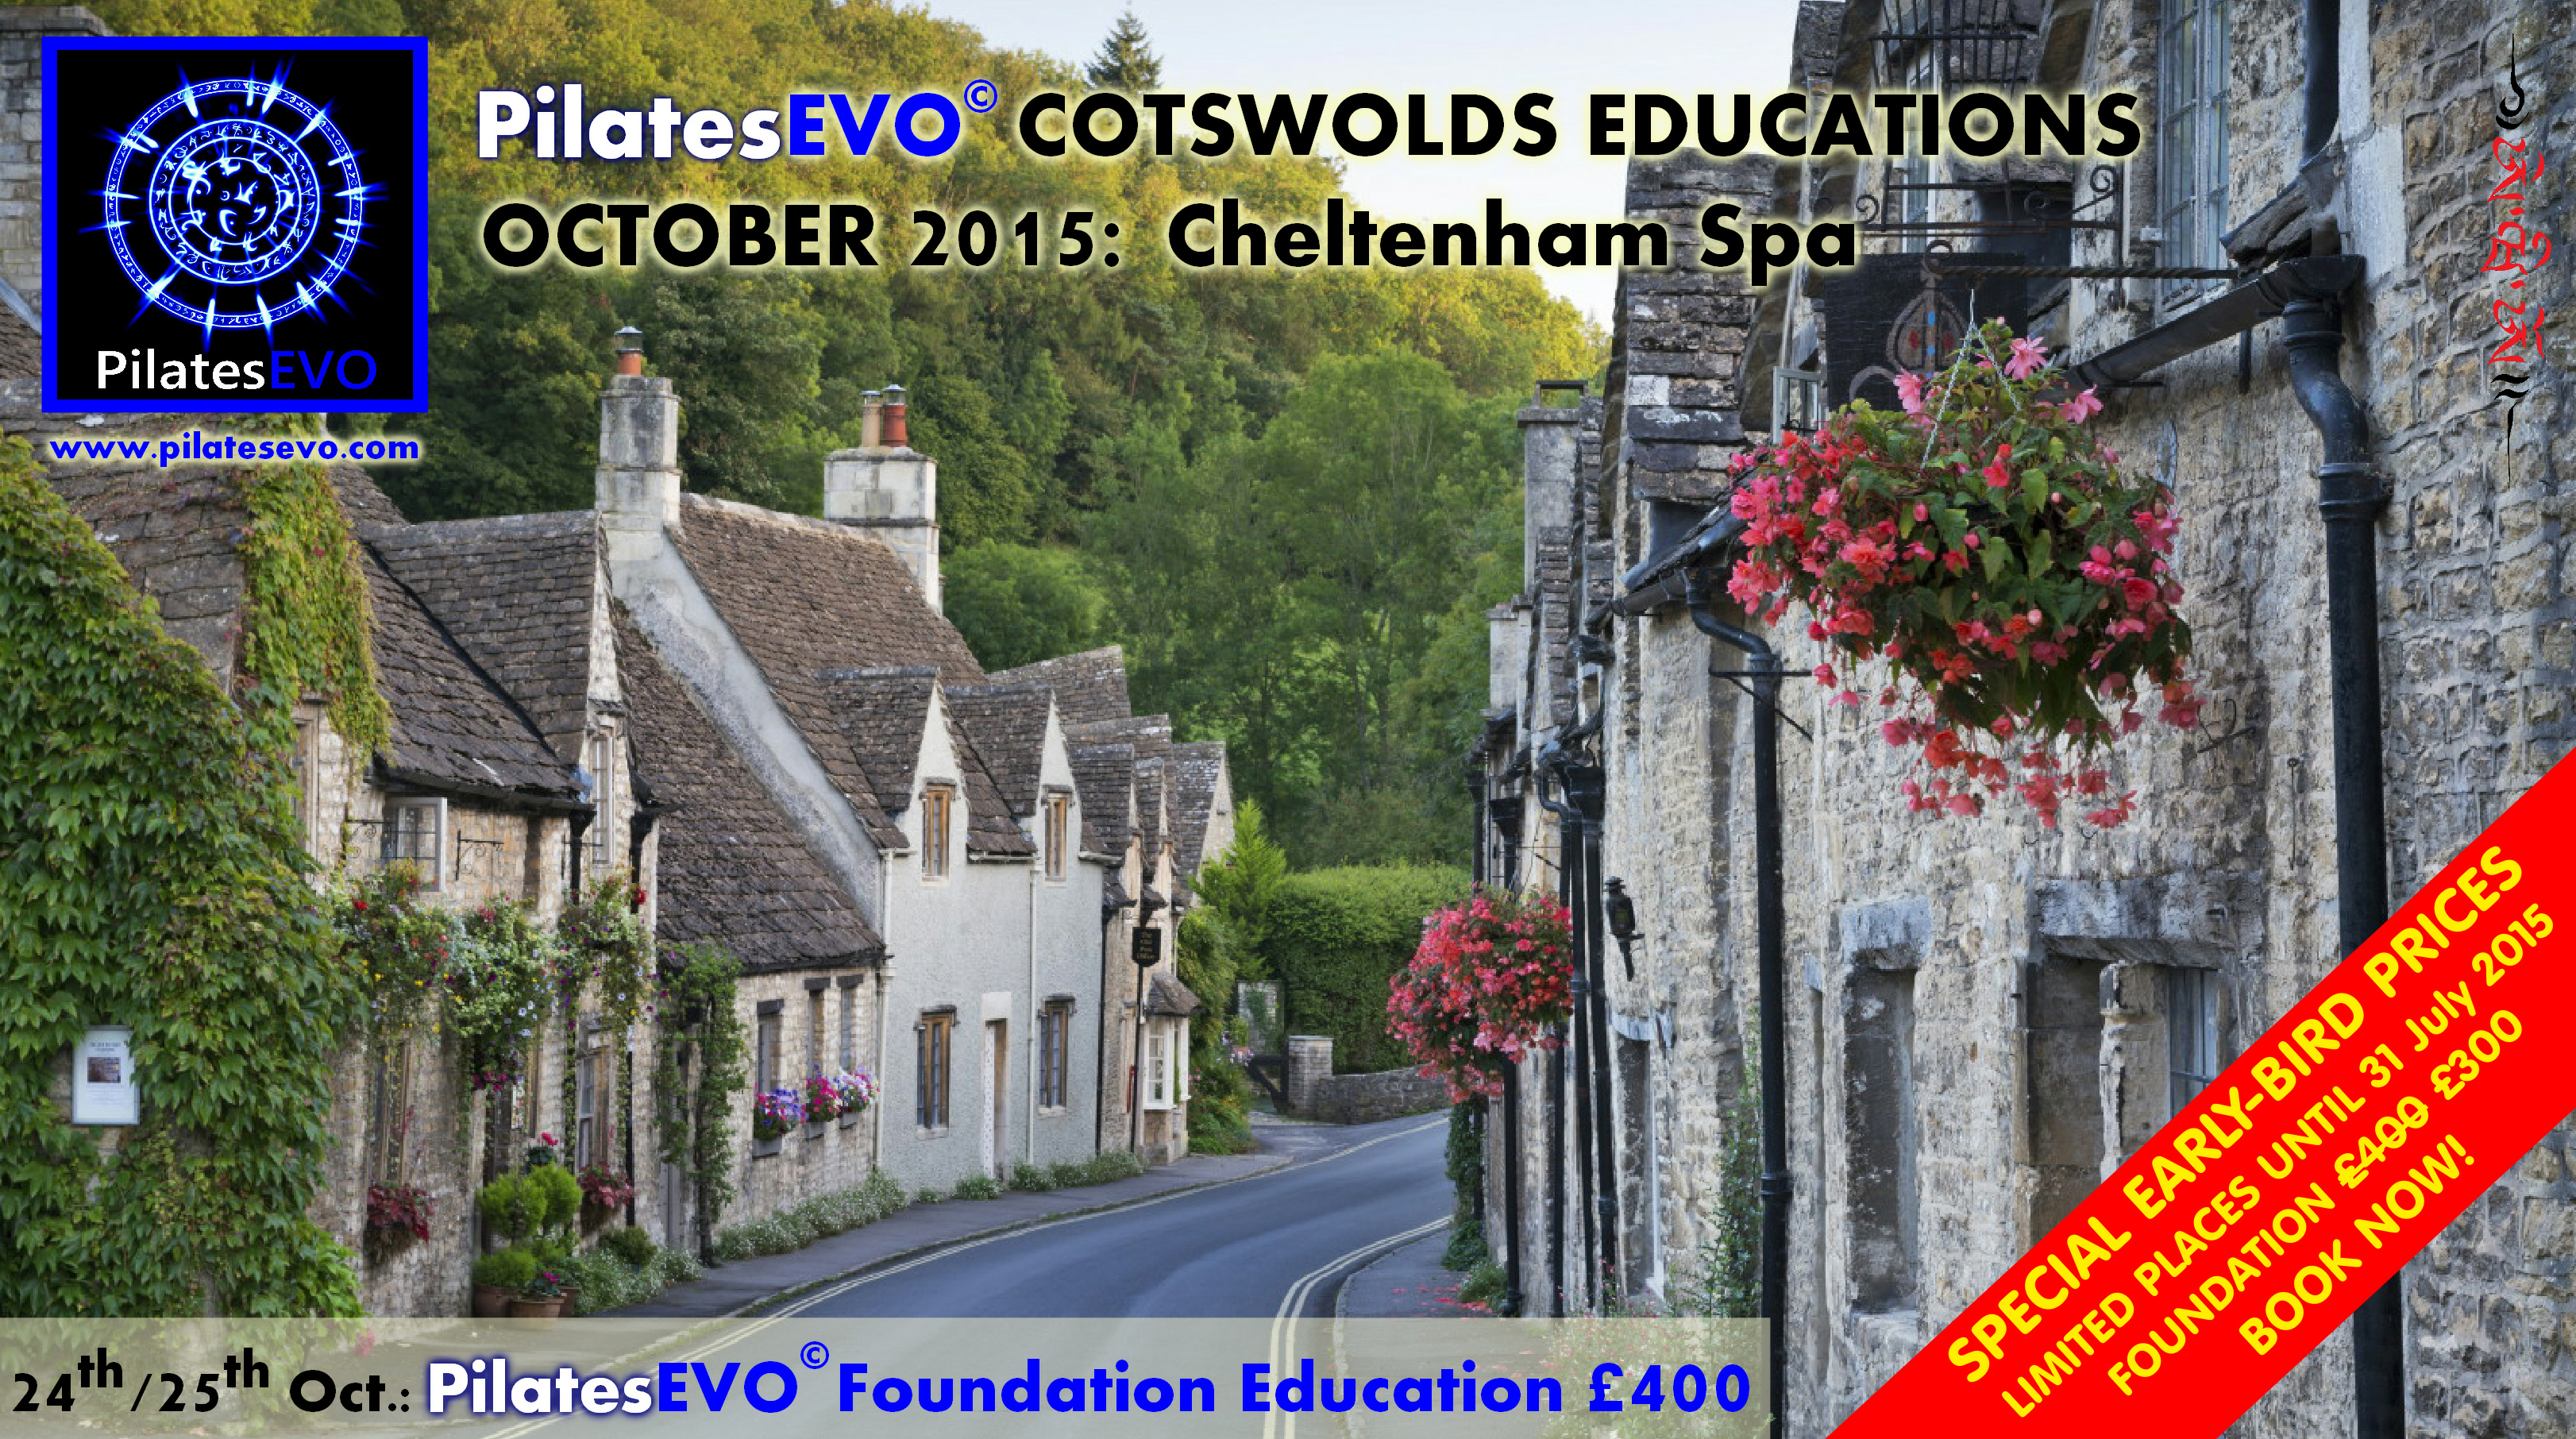 PilatesEVO Cotswolds Educations Oct 2015 v.1